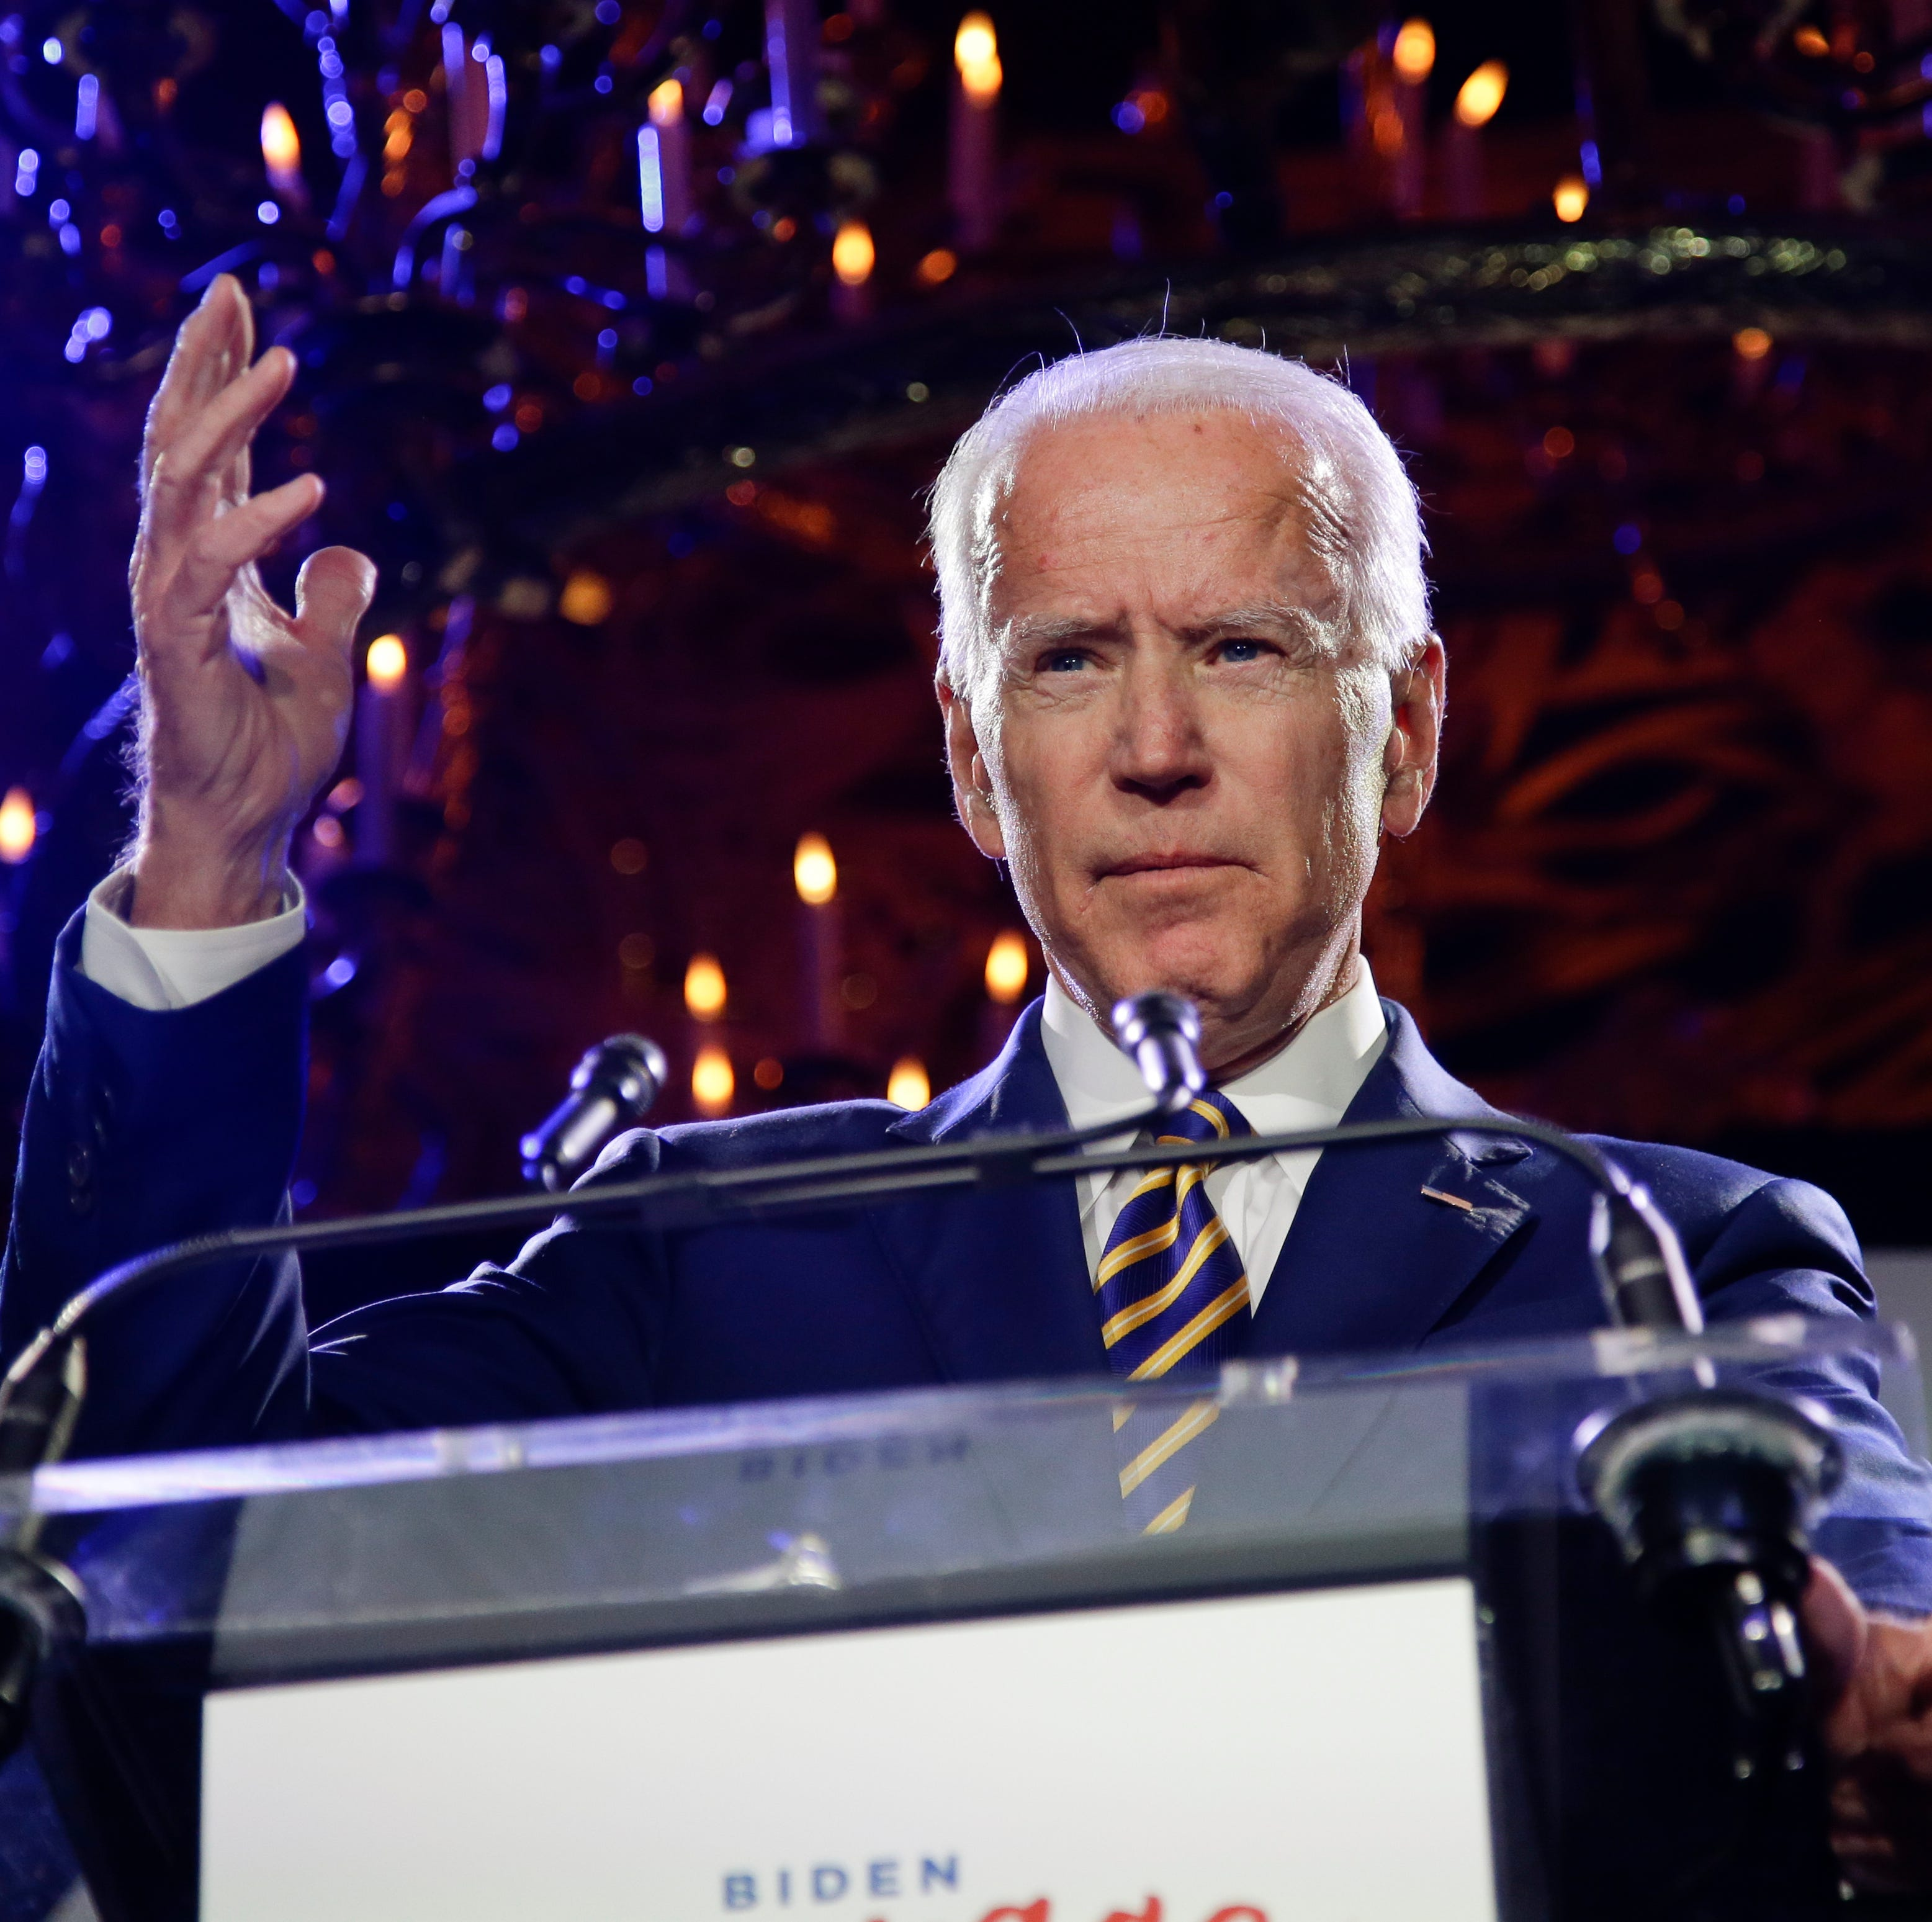 Joe Biden accused of kissing former Nevada lawmaker, an allegation he doesn't recall